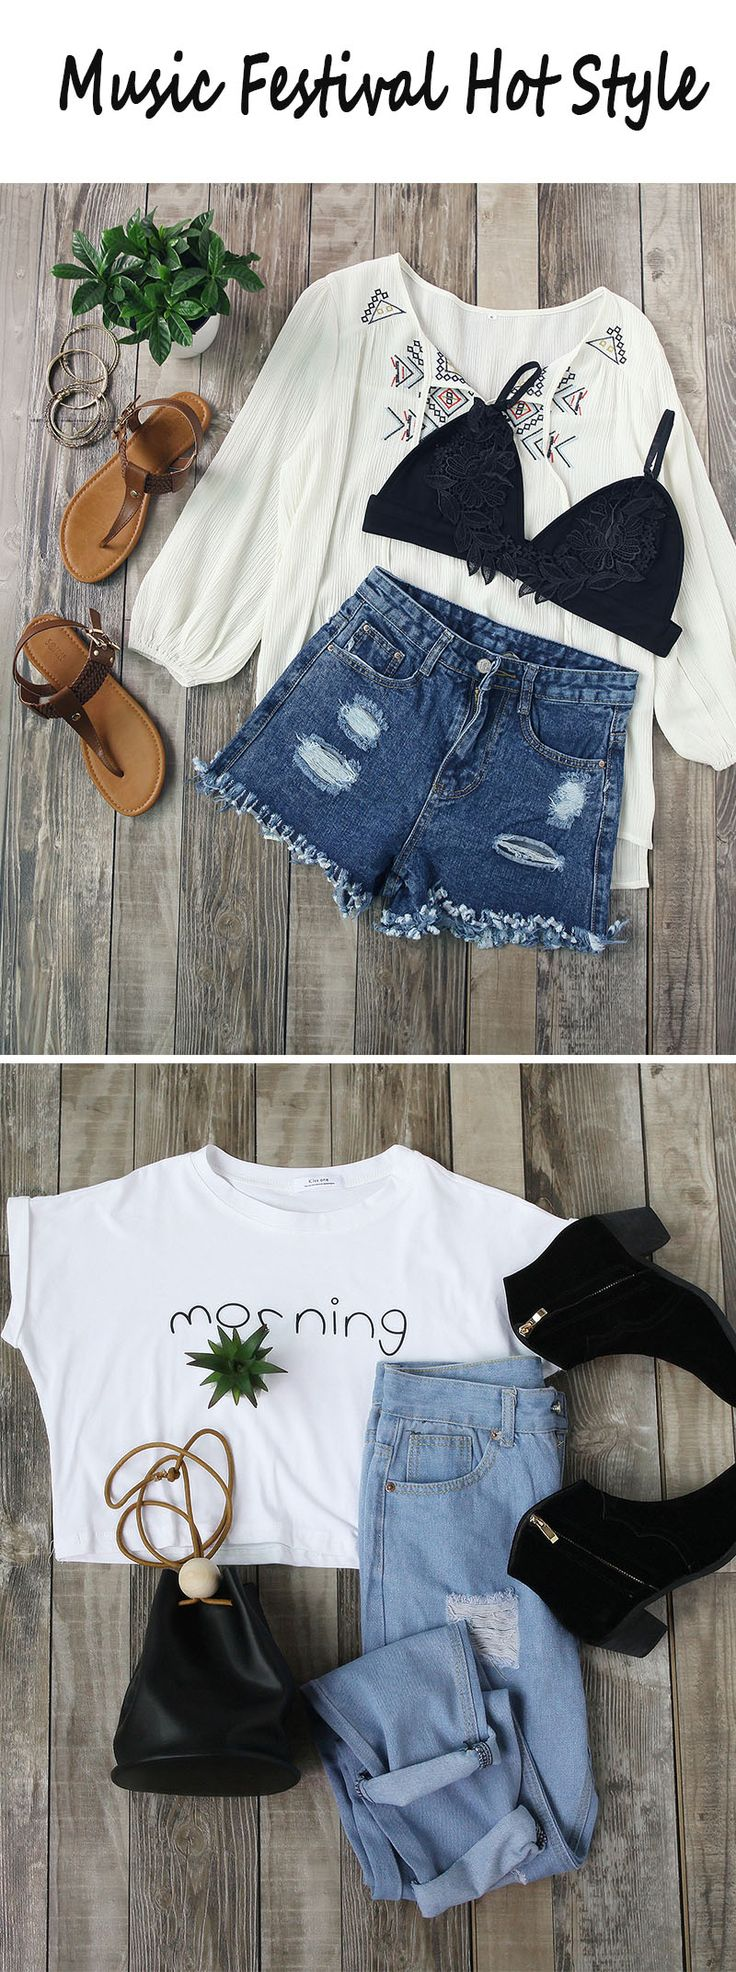 Simple boho look,best outfits for Coachella ball the shorts and shoes are so cute! plus the white tee and blouse #Coachella#festival outfits# summerstyle